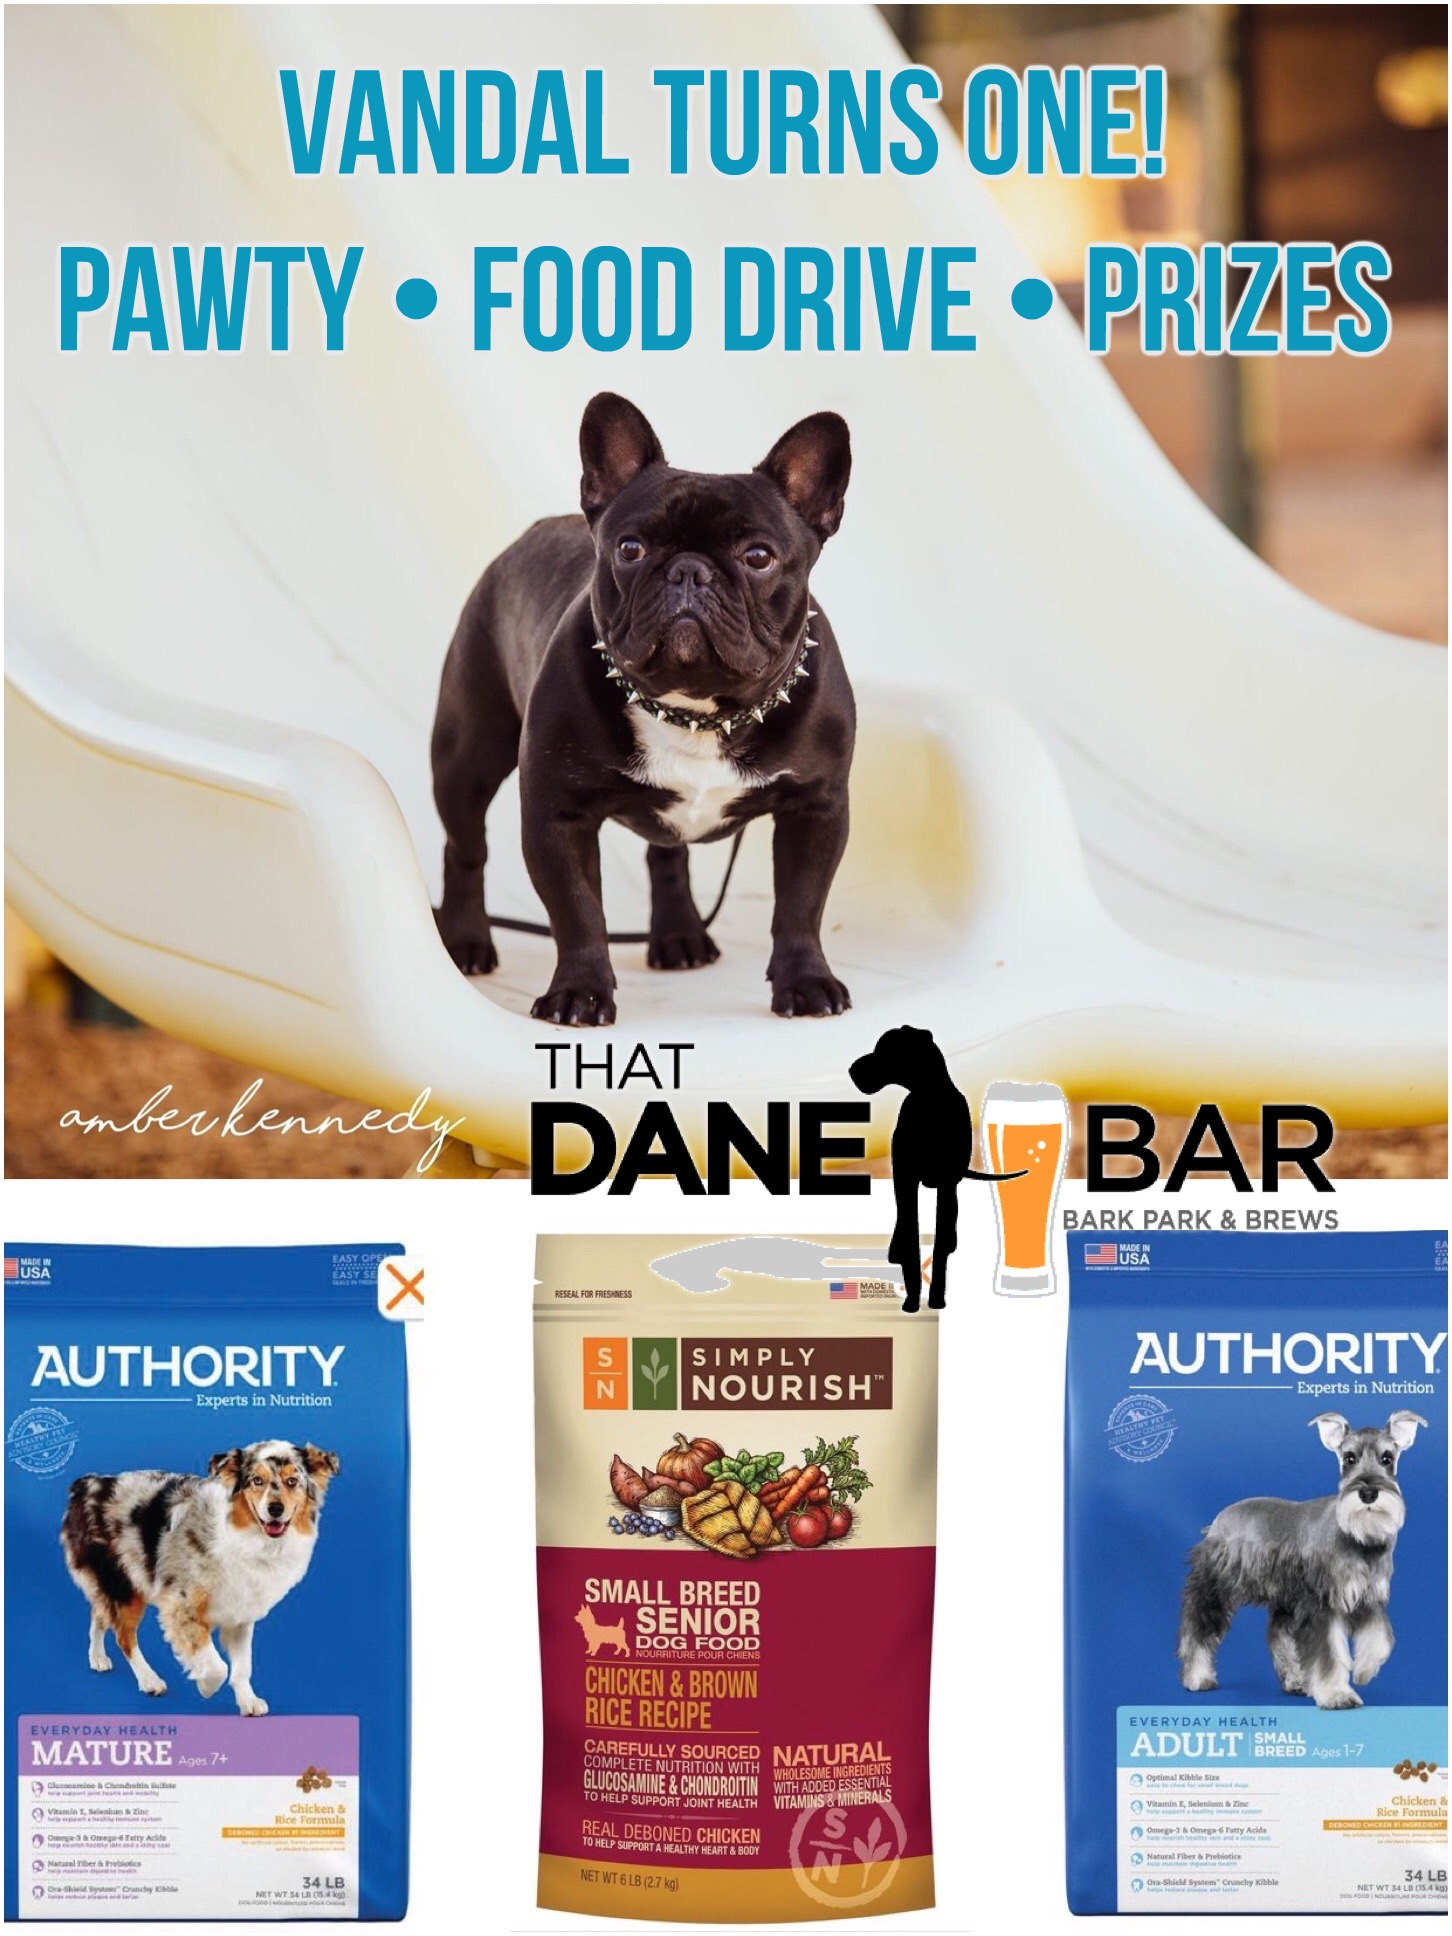 Vandal's Turning One And Pet Food Drive